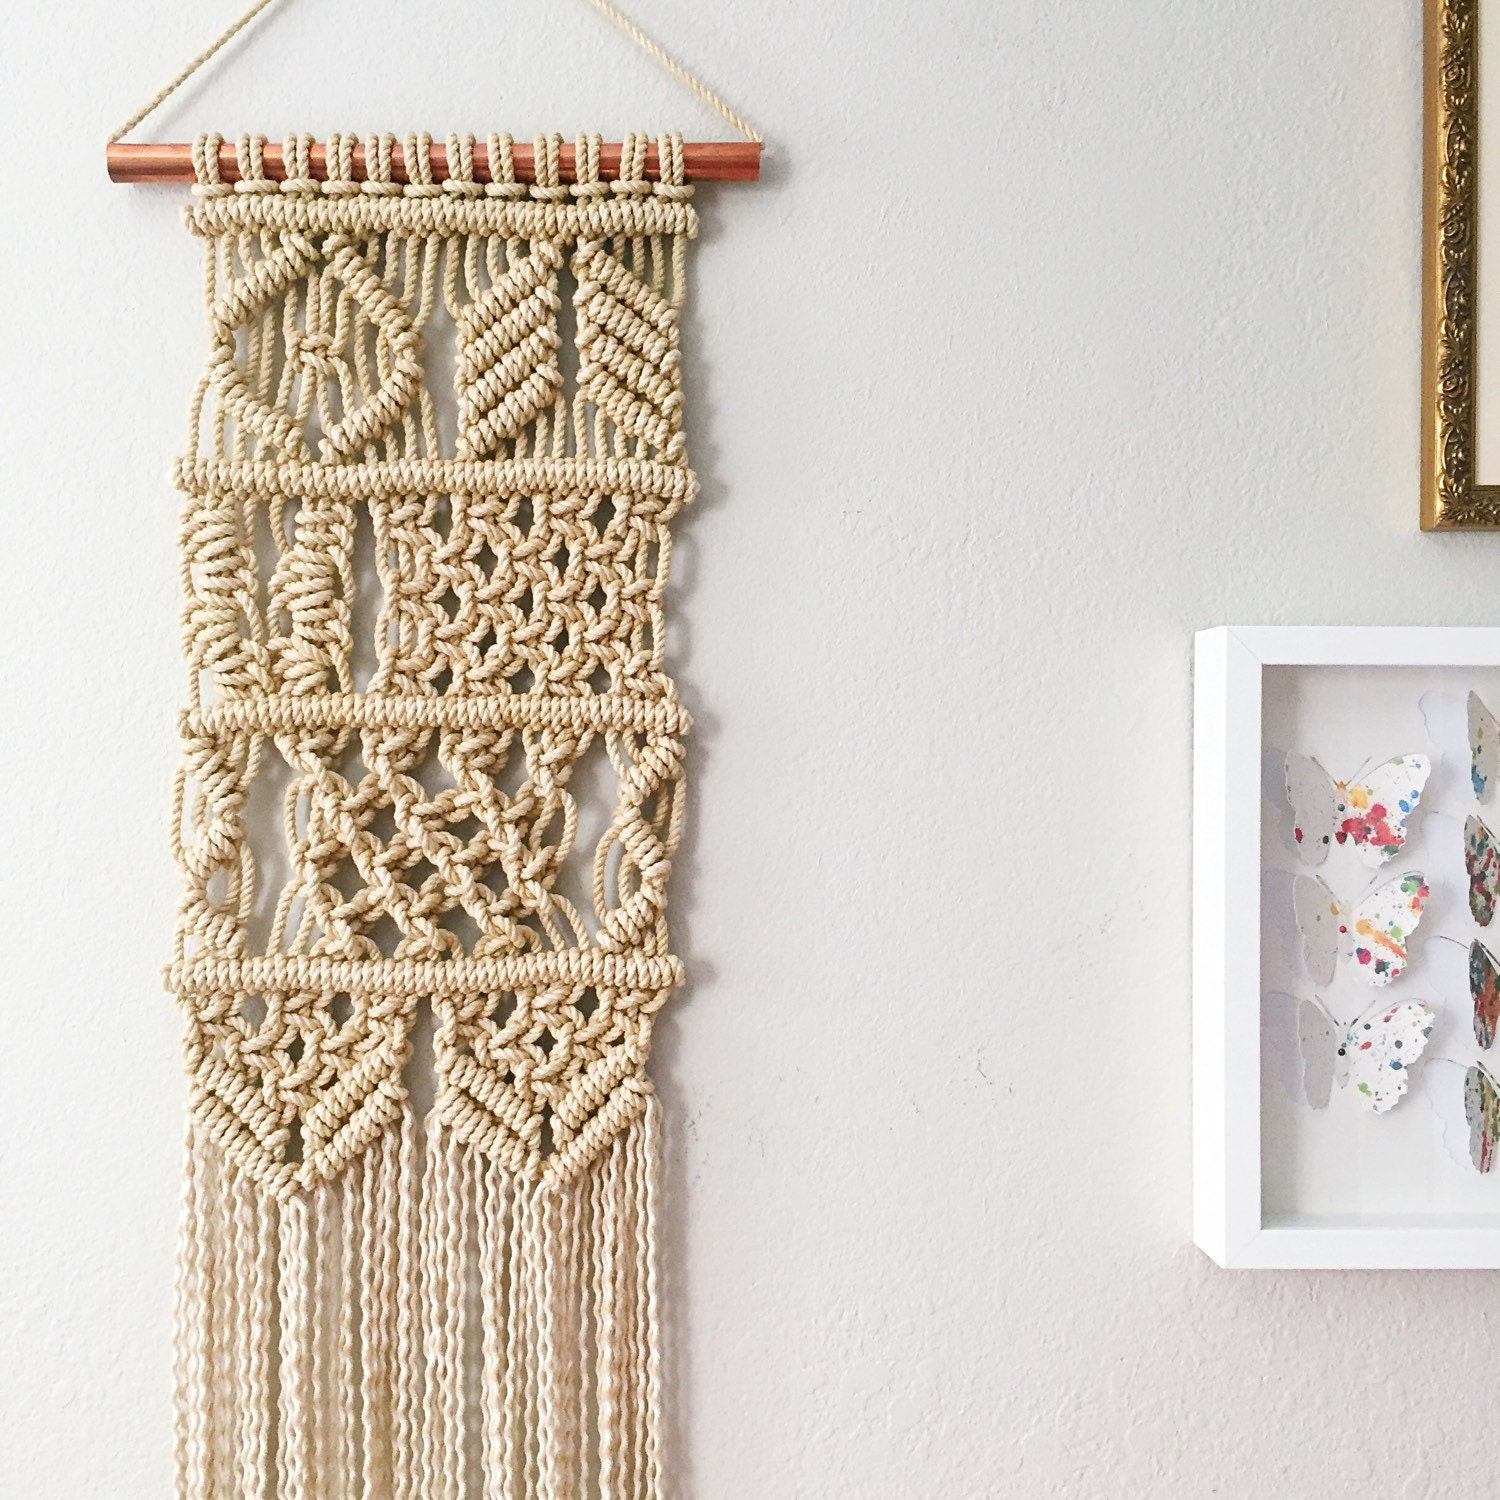 macrame wall hanging kit macrame kit macrame wall hanging kit diy gift kit by 6306